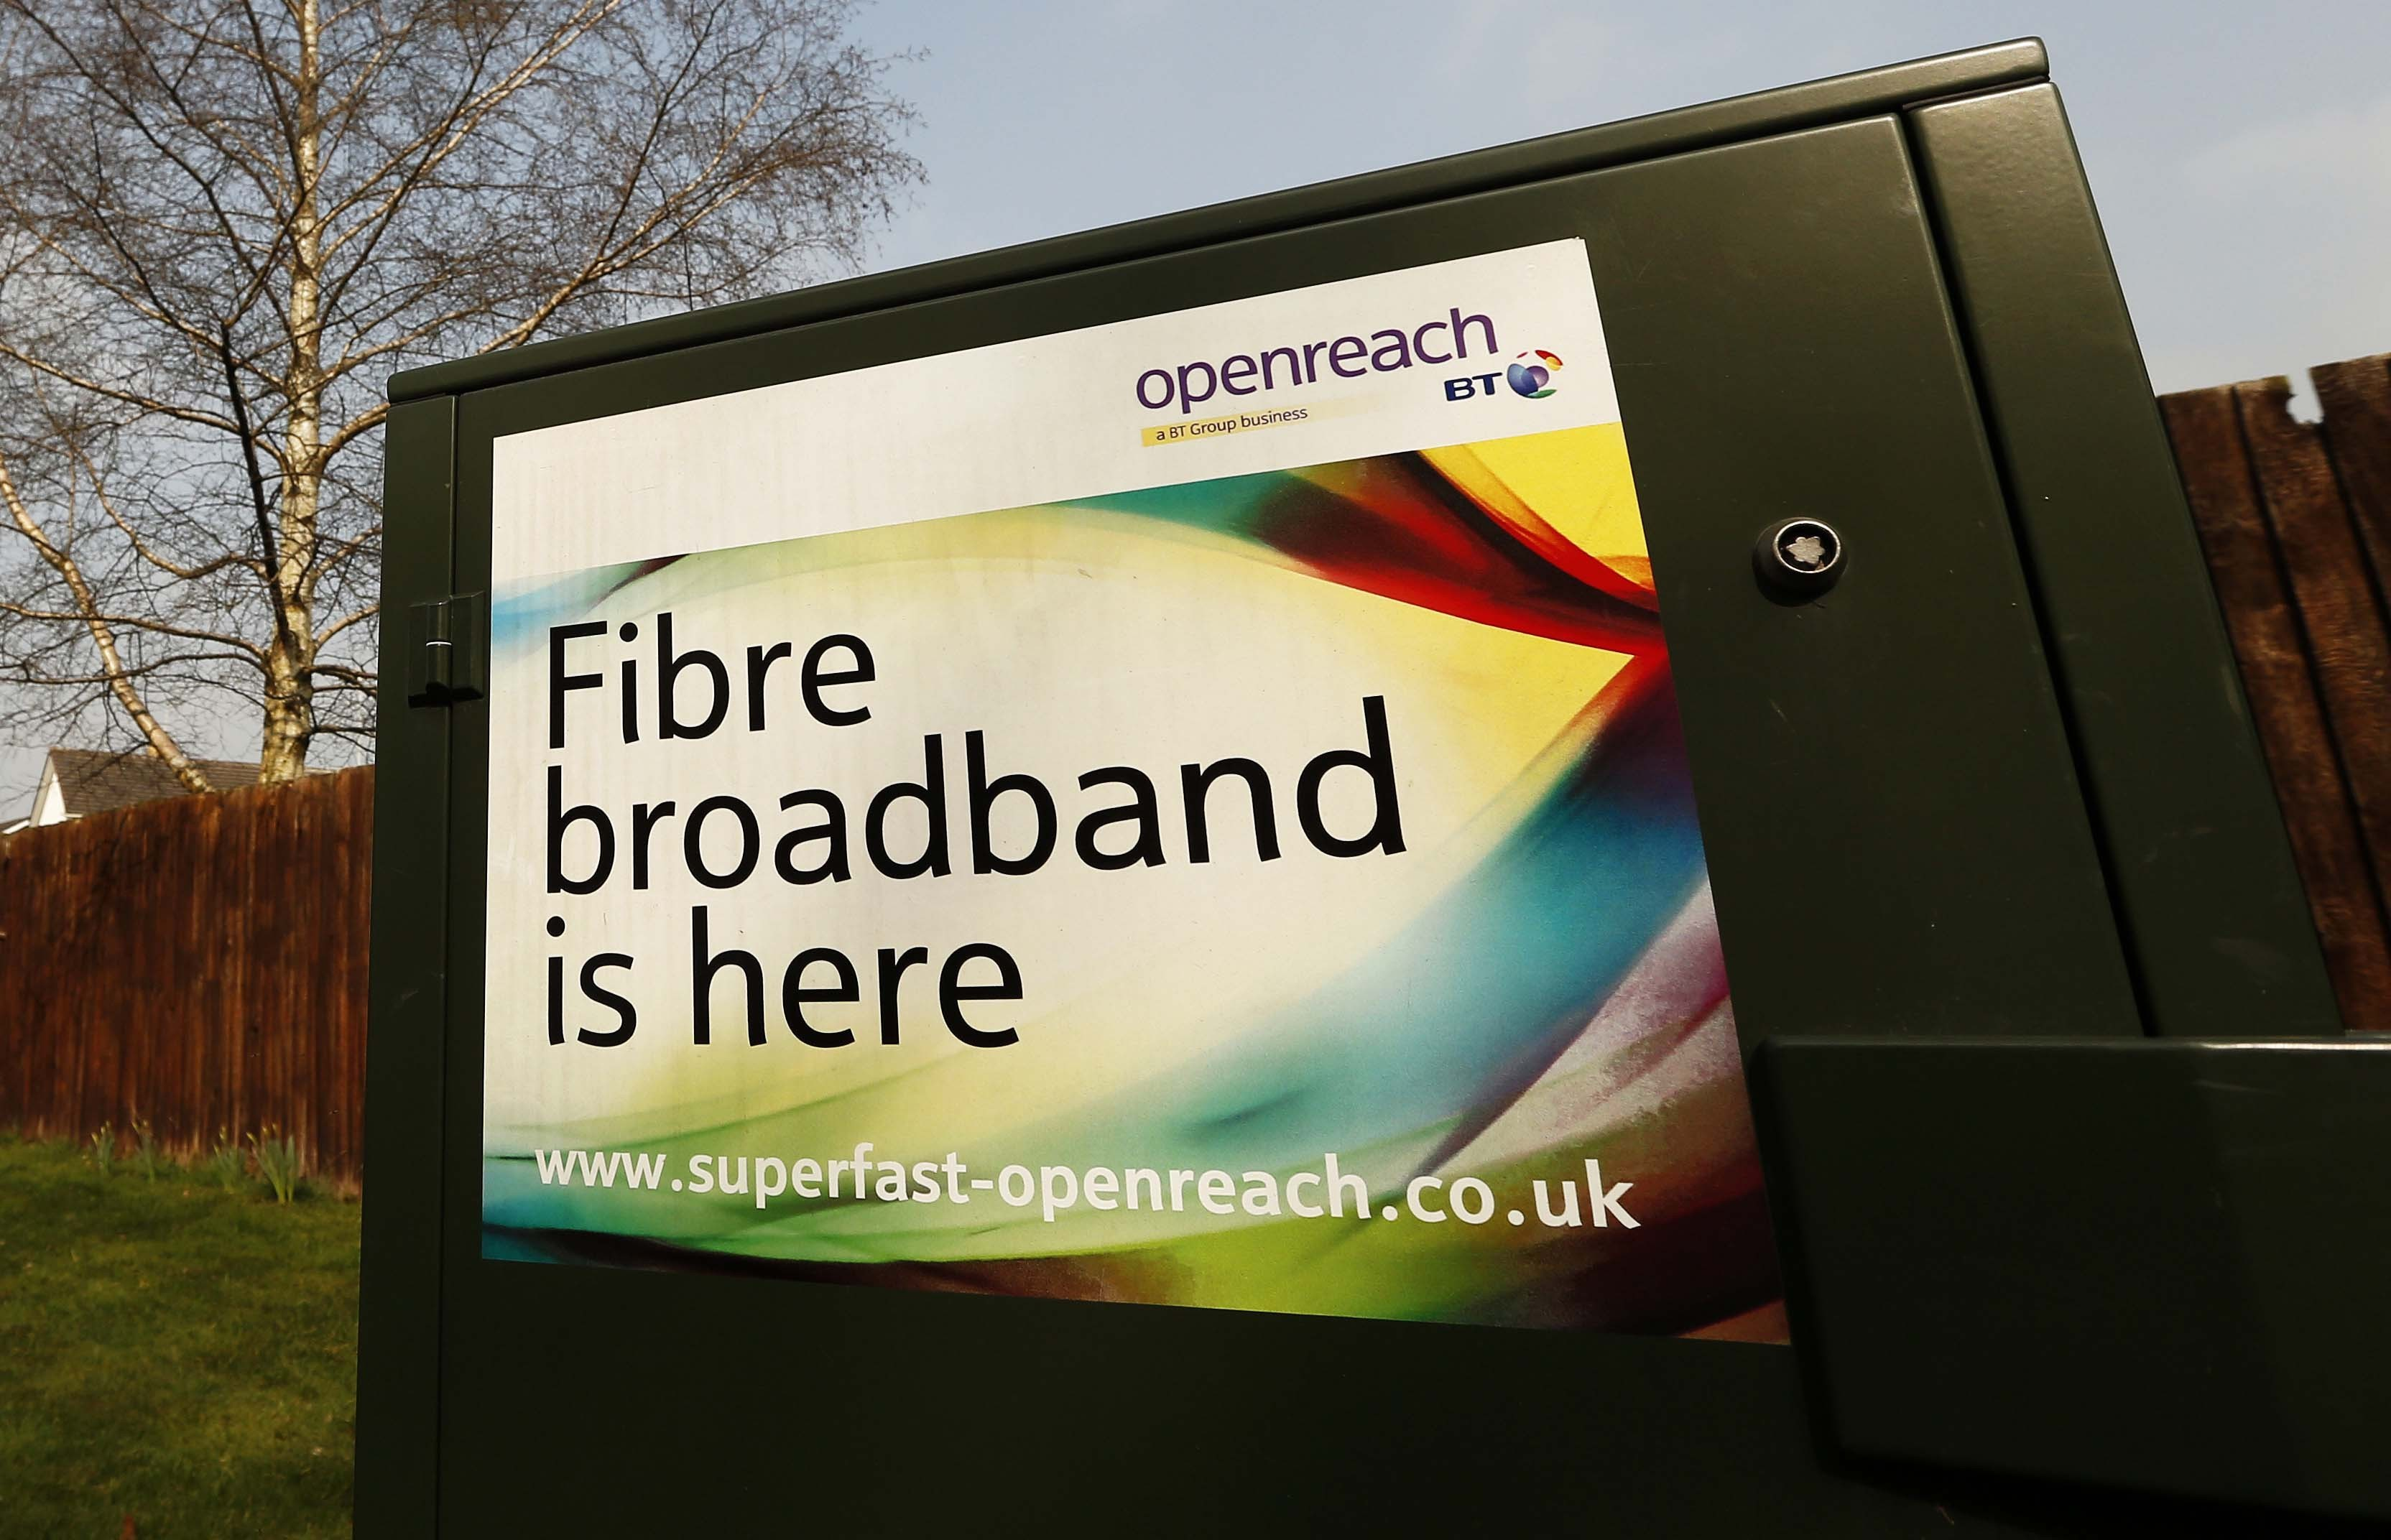 An advertisement from BT Open Reach.